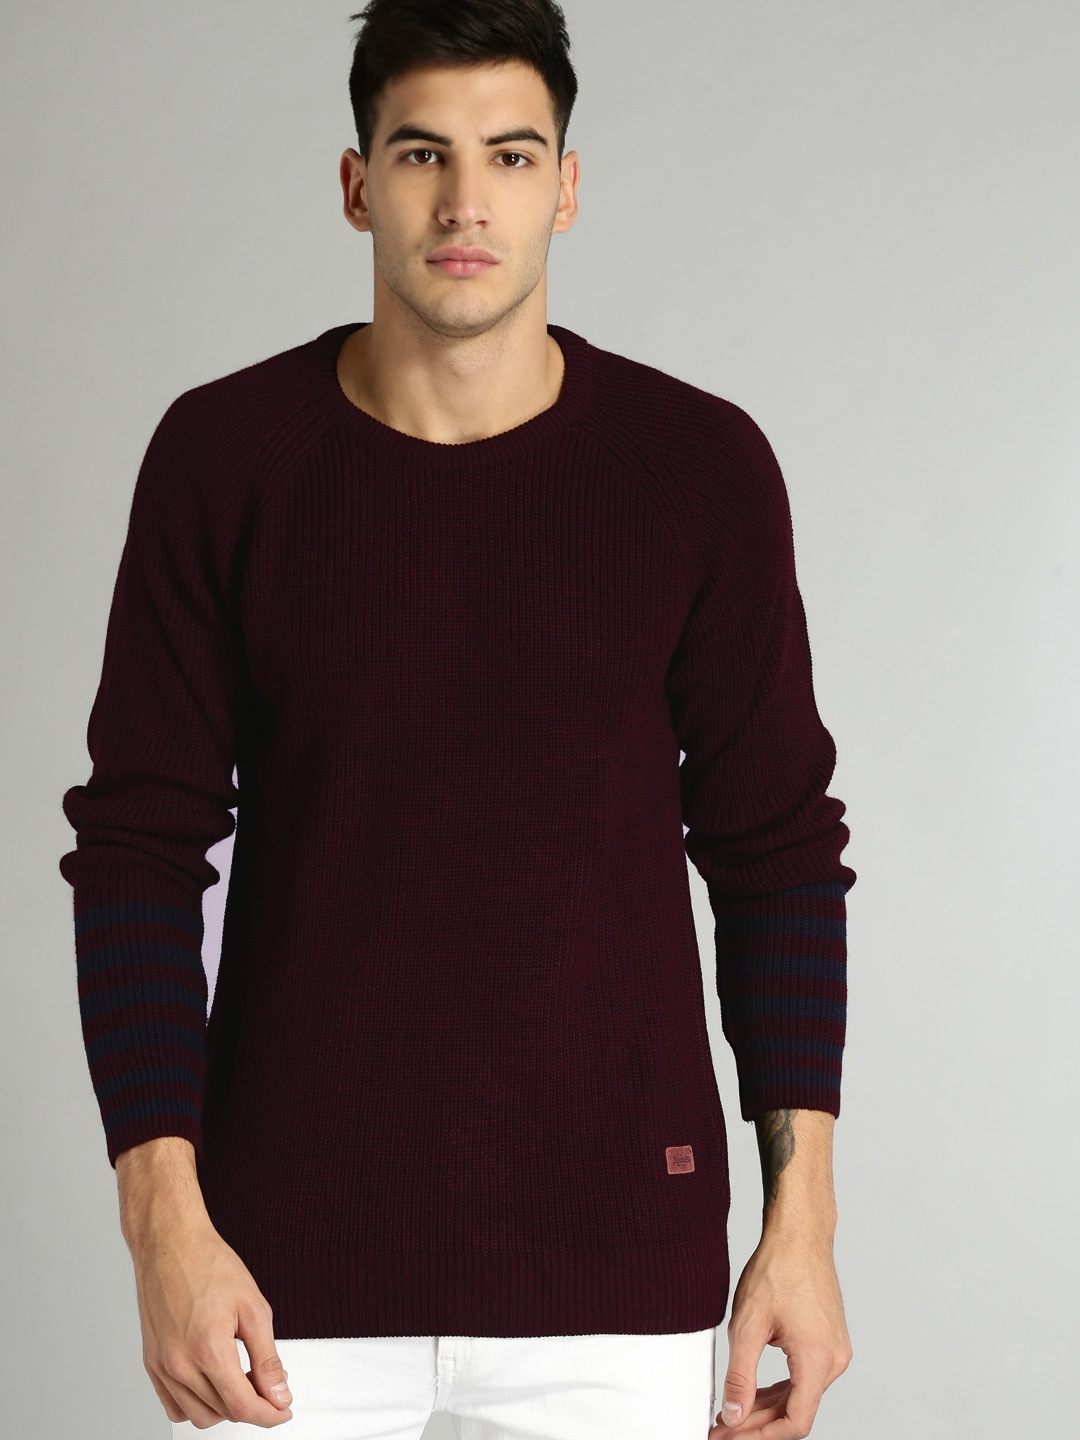 58f5548cb7 Sweaters for Men - Buy Mens Sweaters